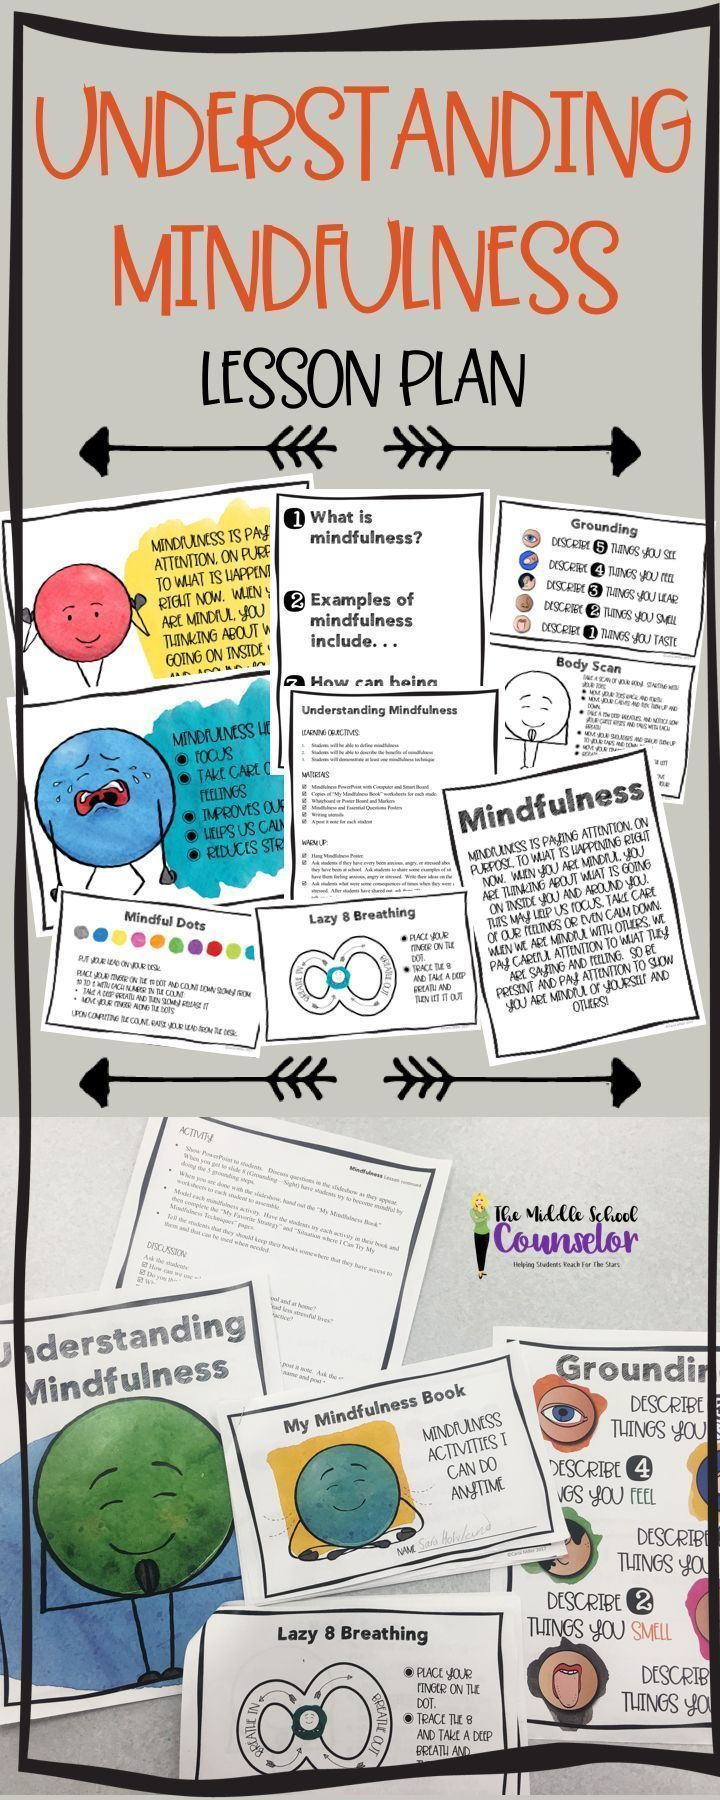 Understanding Mindfulness.  Lesson plan with PowerPoint presentation, strategy booklet for students and classroom posters.